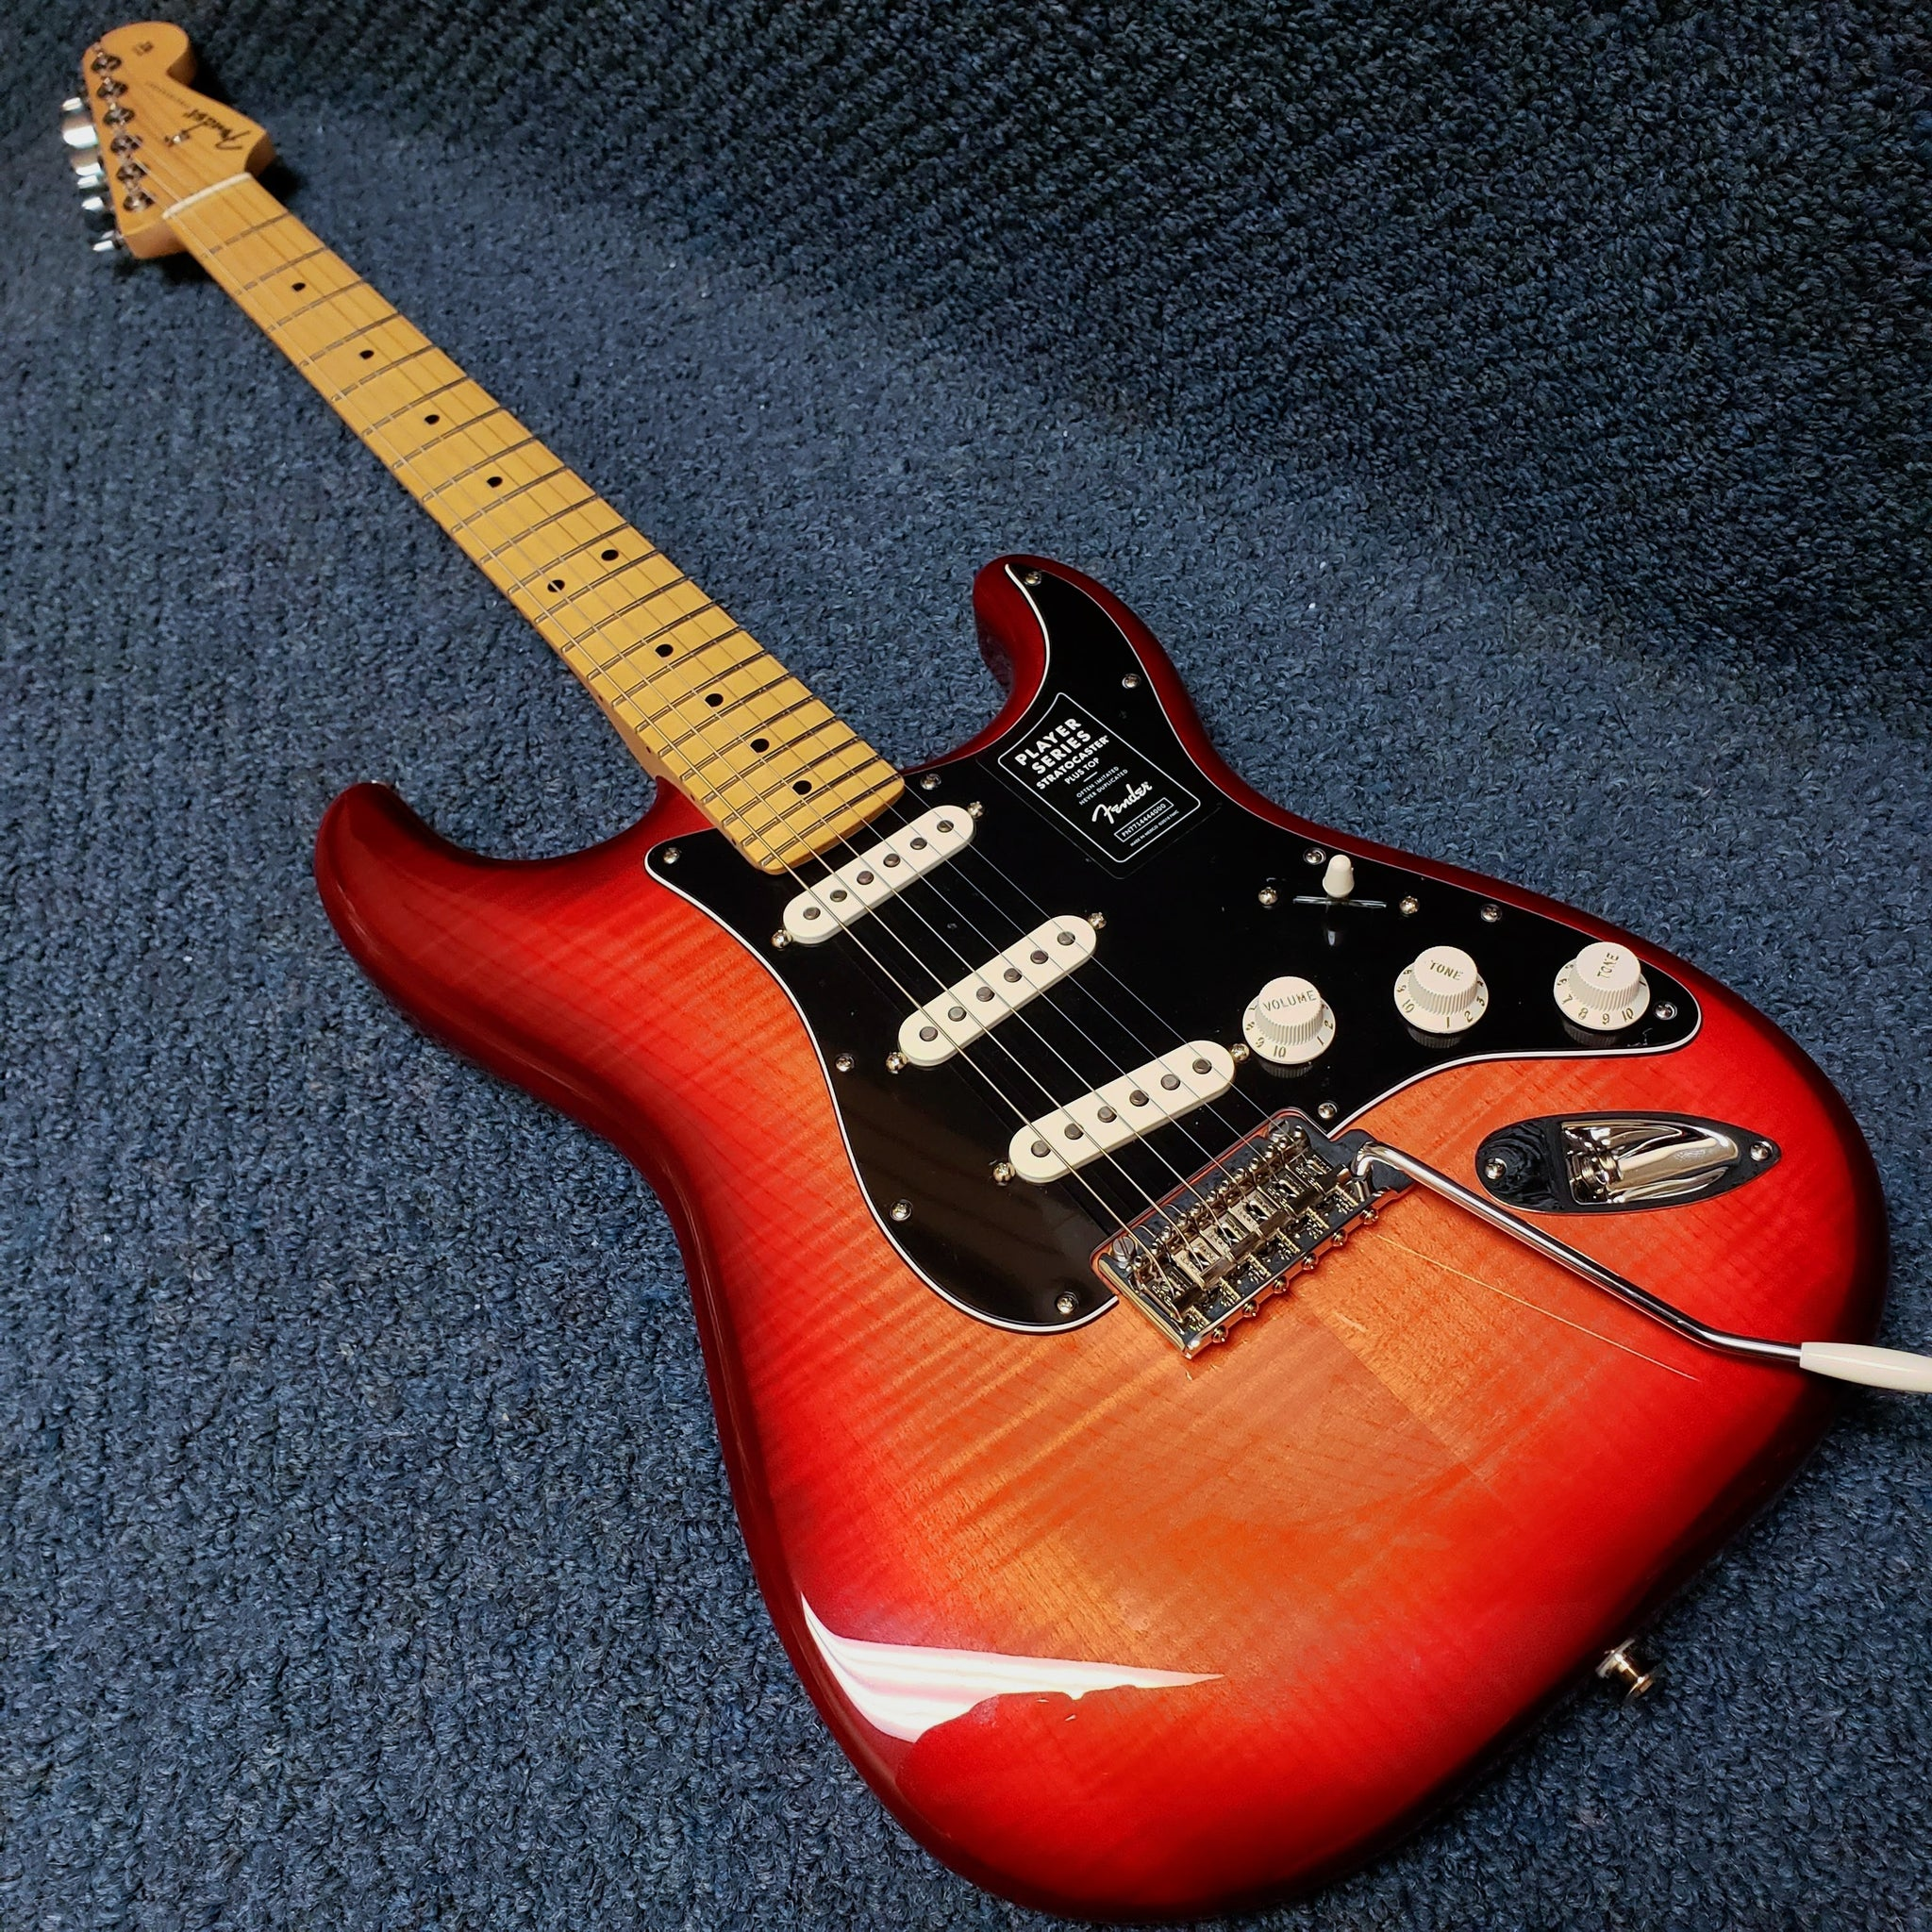 NEW Fender Player Series Stratocaster (+ Top) Electric Guitar